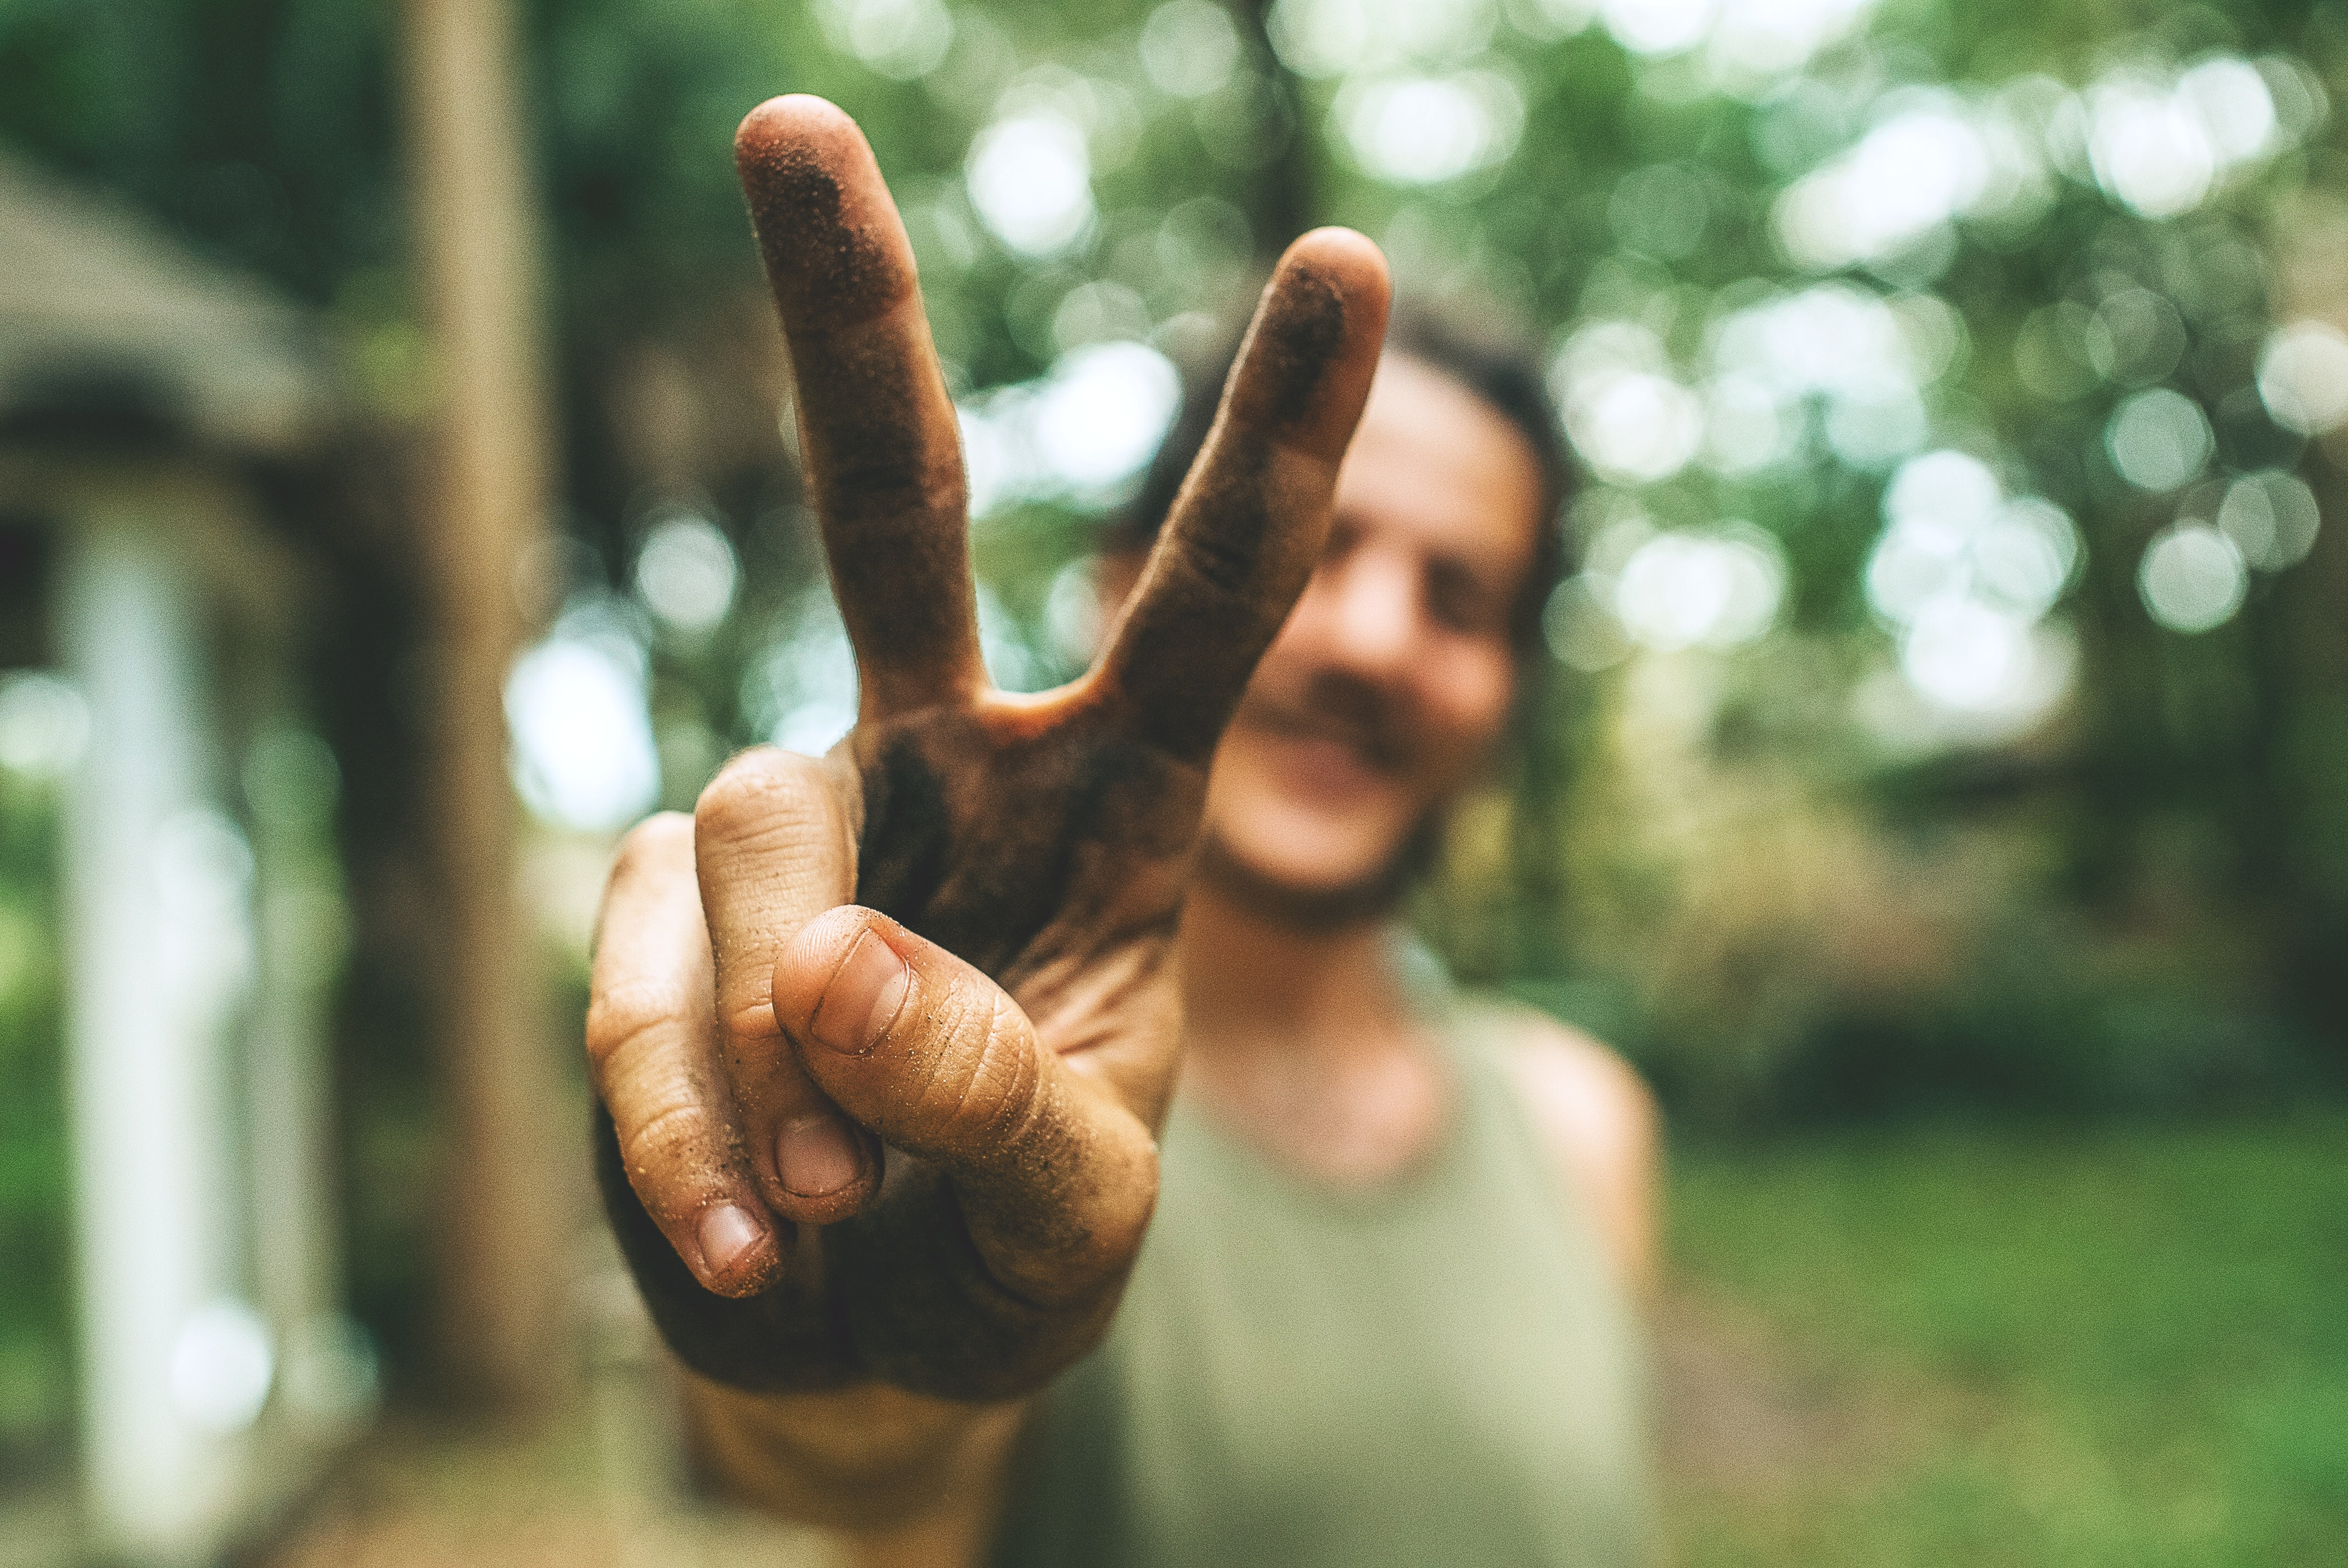 Man extends a peace sign with dirty hands in the wood